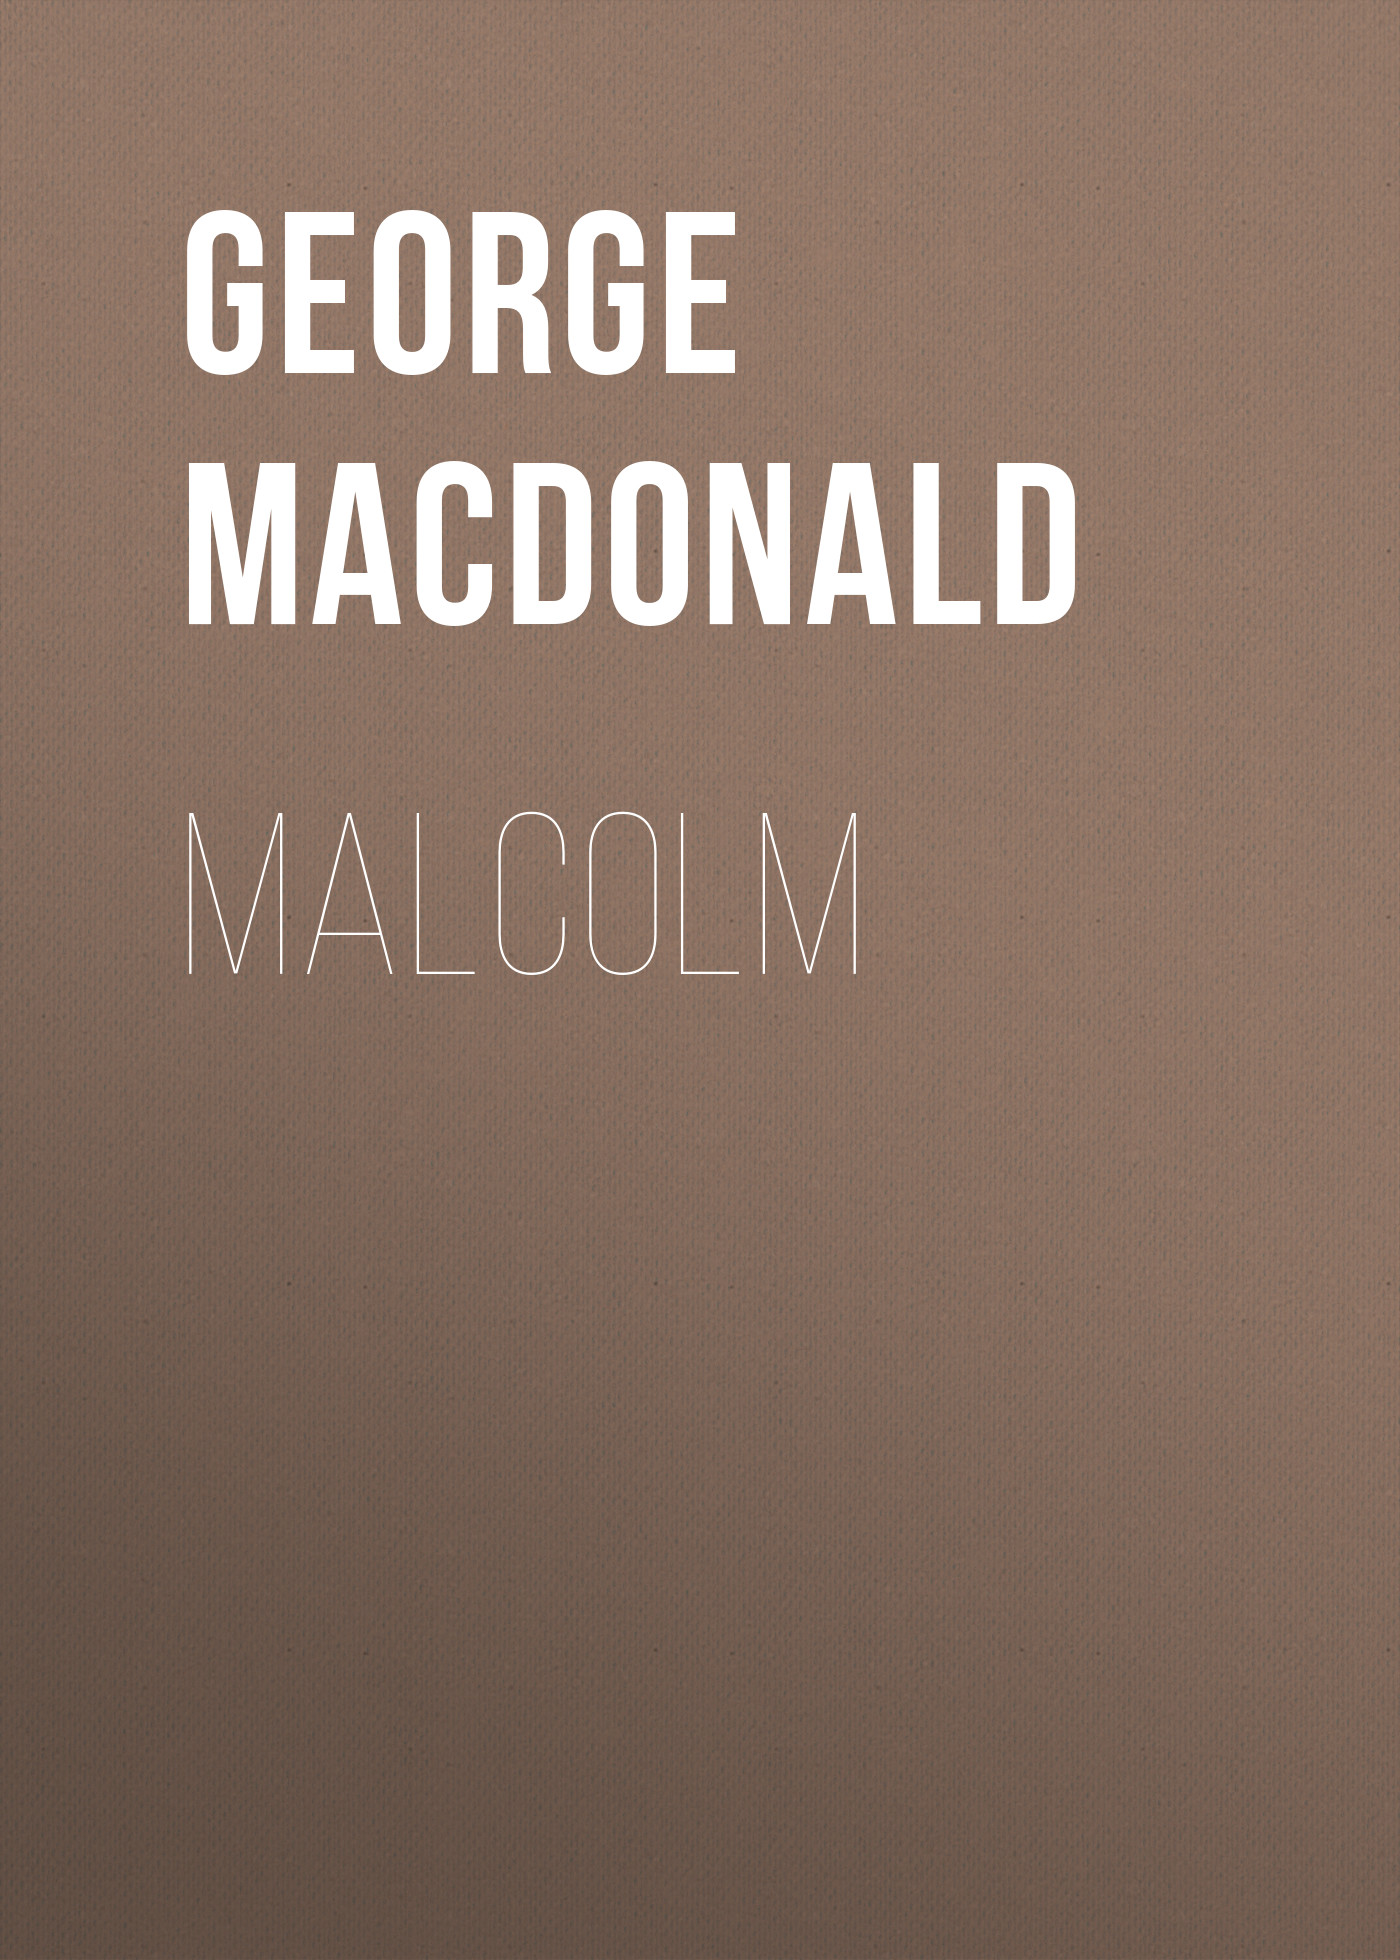 George MacDonald Malcolm george macdonald home again